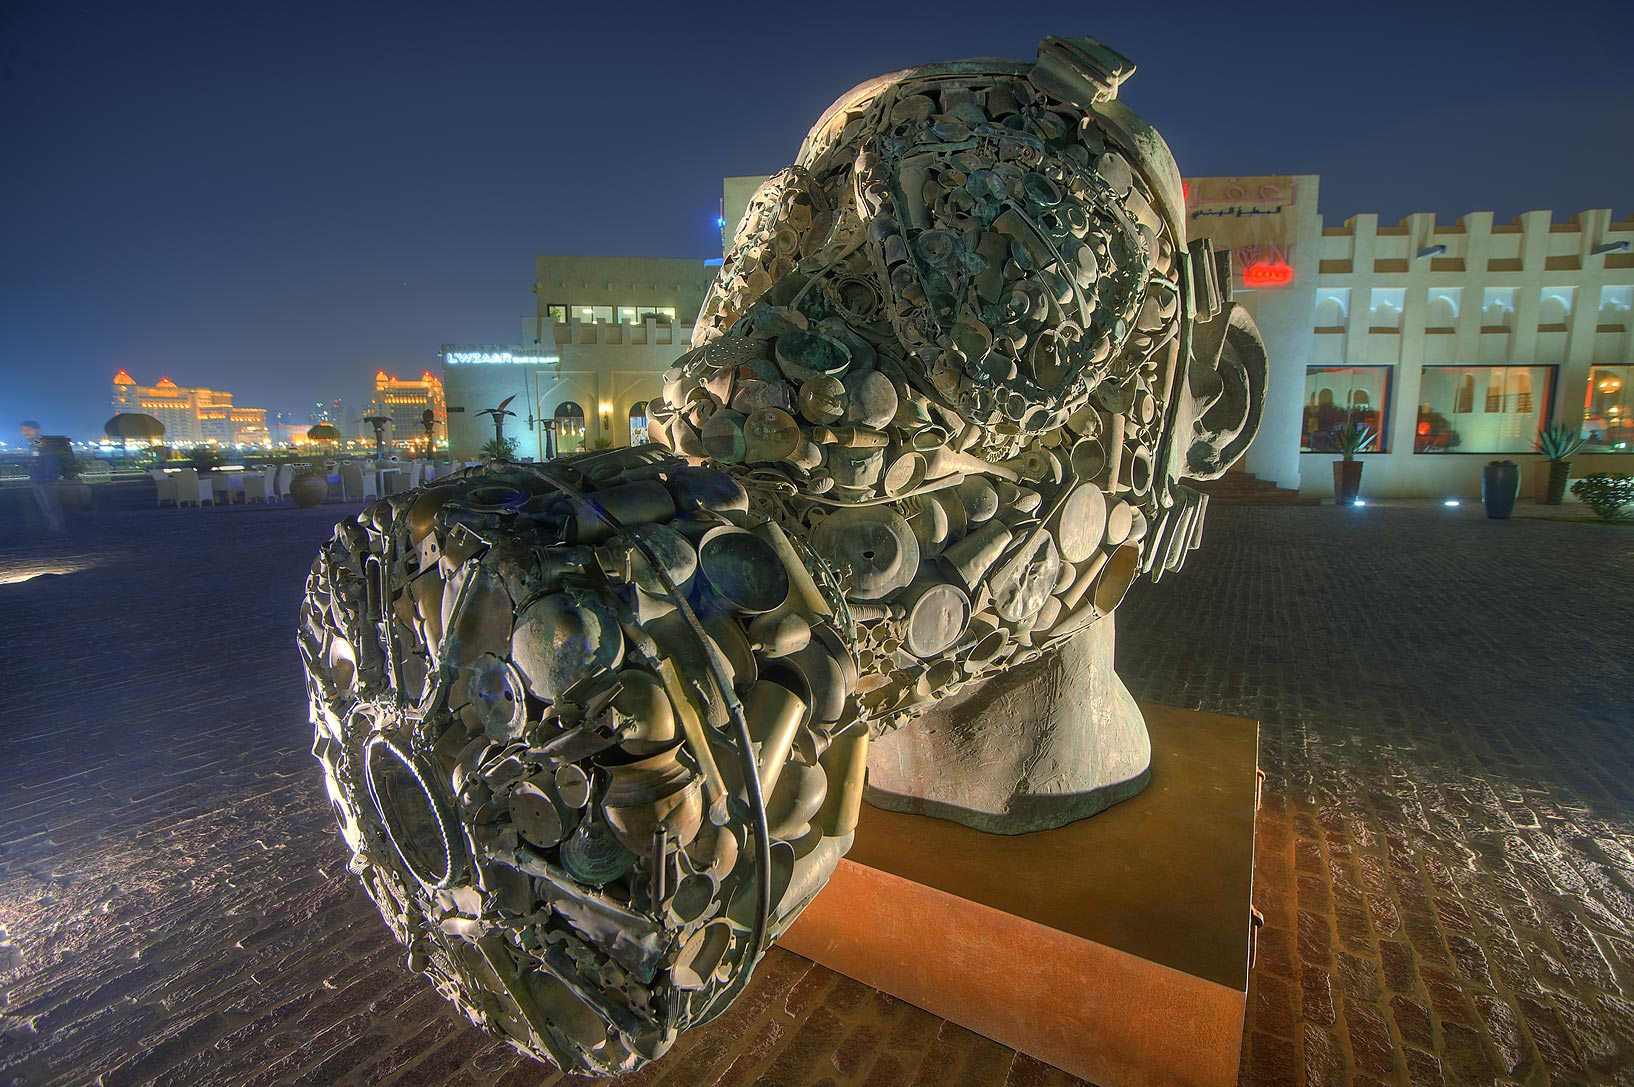 Subodh Gupta's Three Monkeys Sculpture (Mahatma...Village at evening. Doha, Qatar